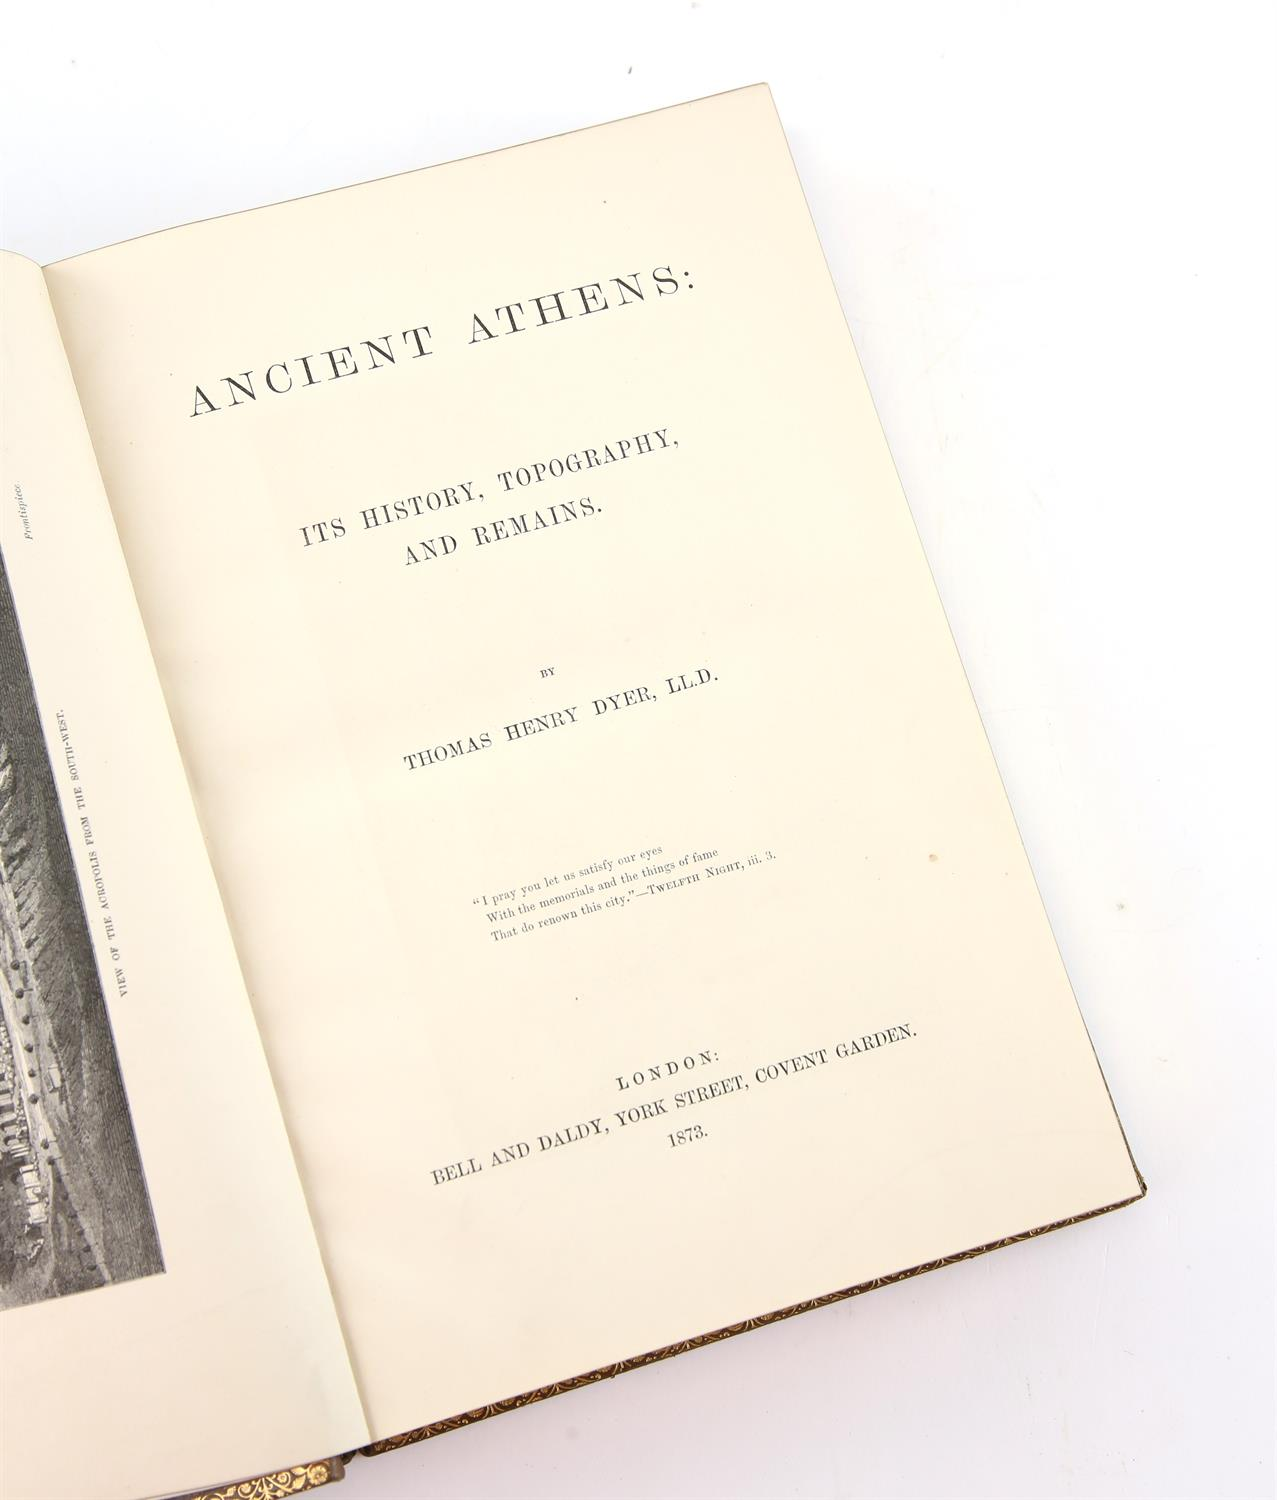 Thomas Henry Dyer, Ancient Athens; Its history, typography and remains, First edition published - Image 3 of 4